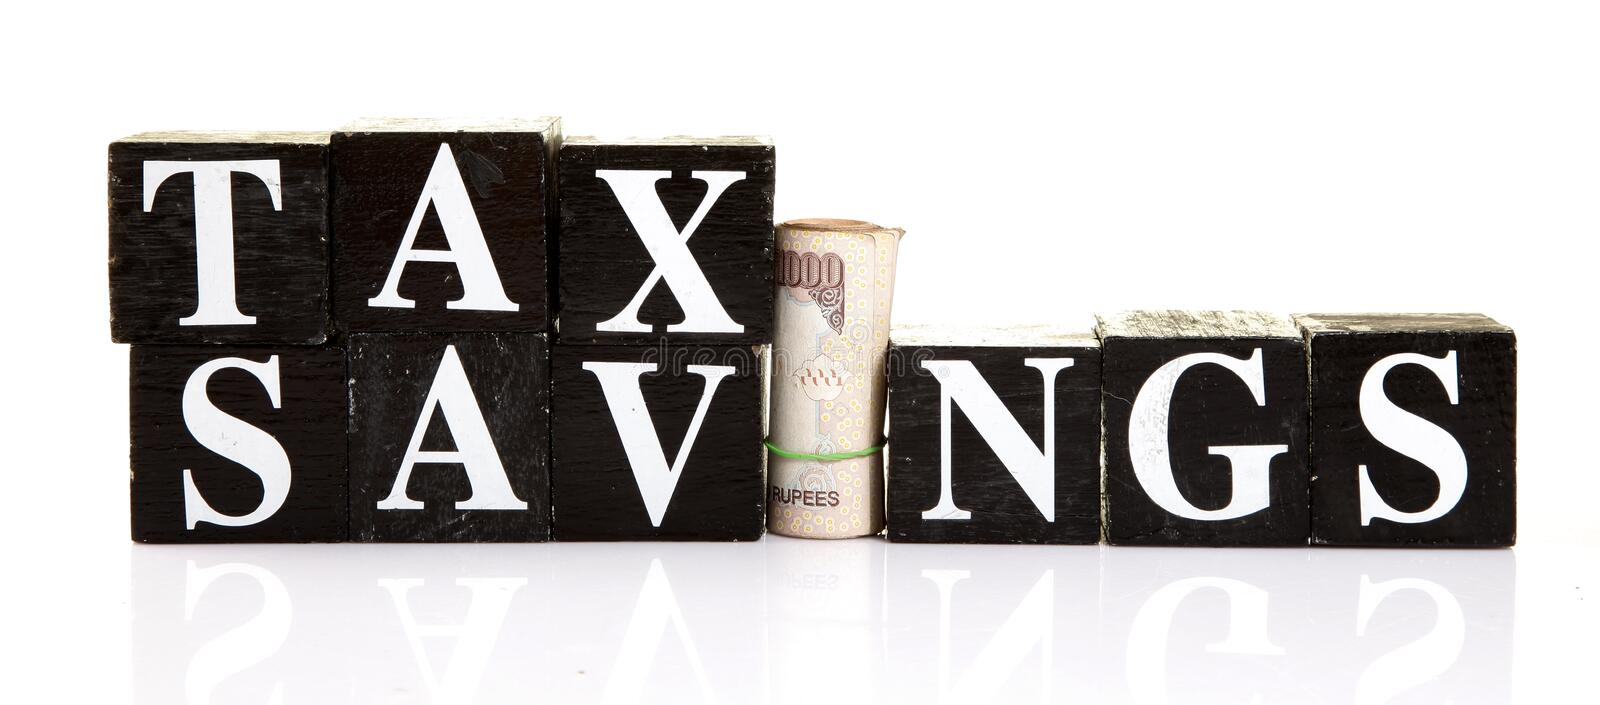 Tax savings stock photos